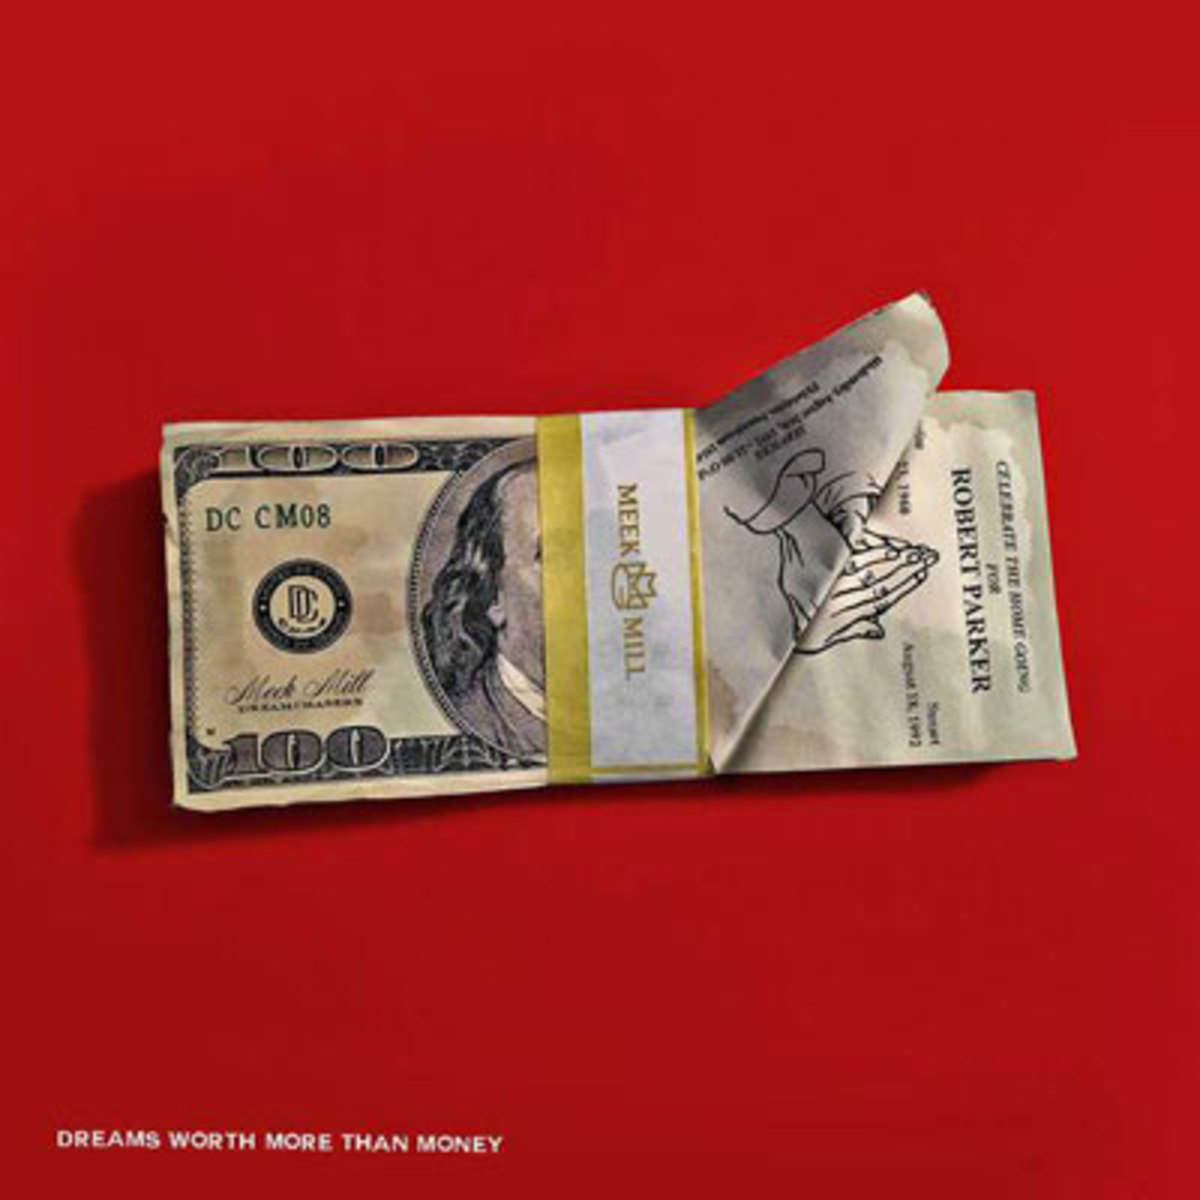 meek-mill-dreams-worth-more-than-money.jpg